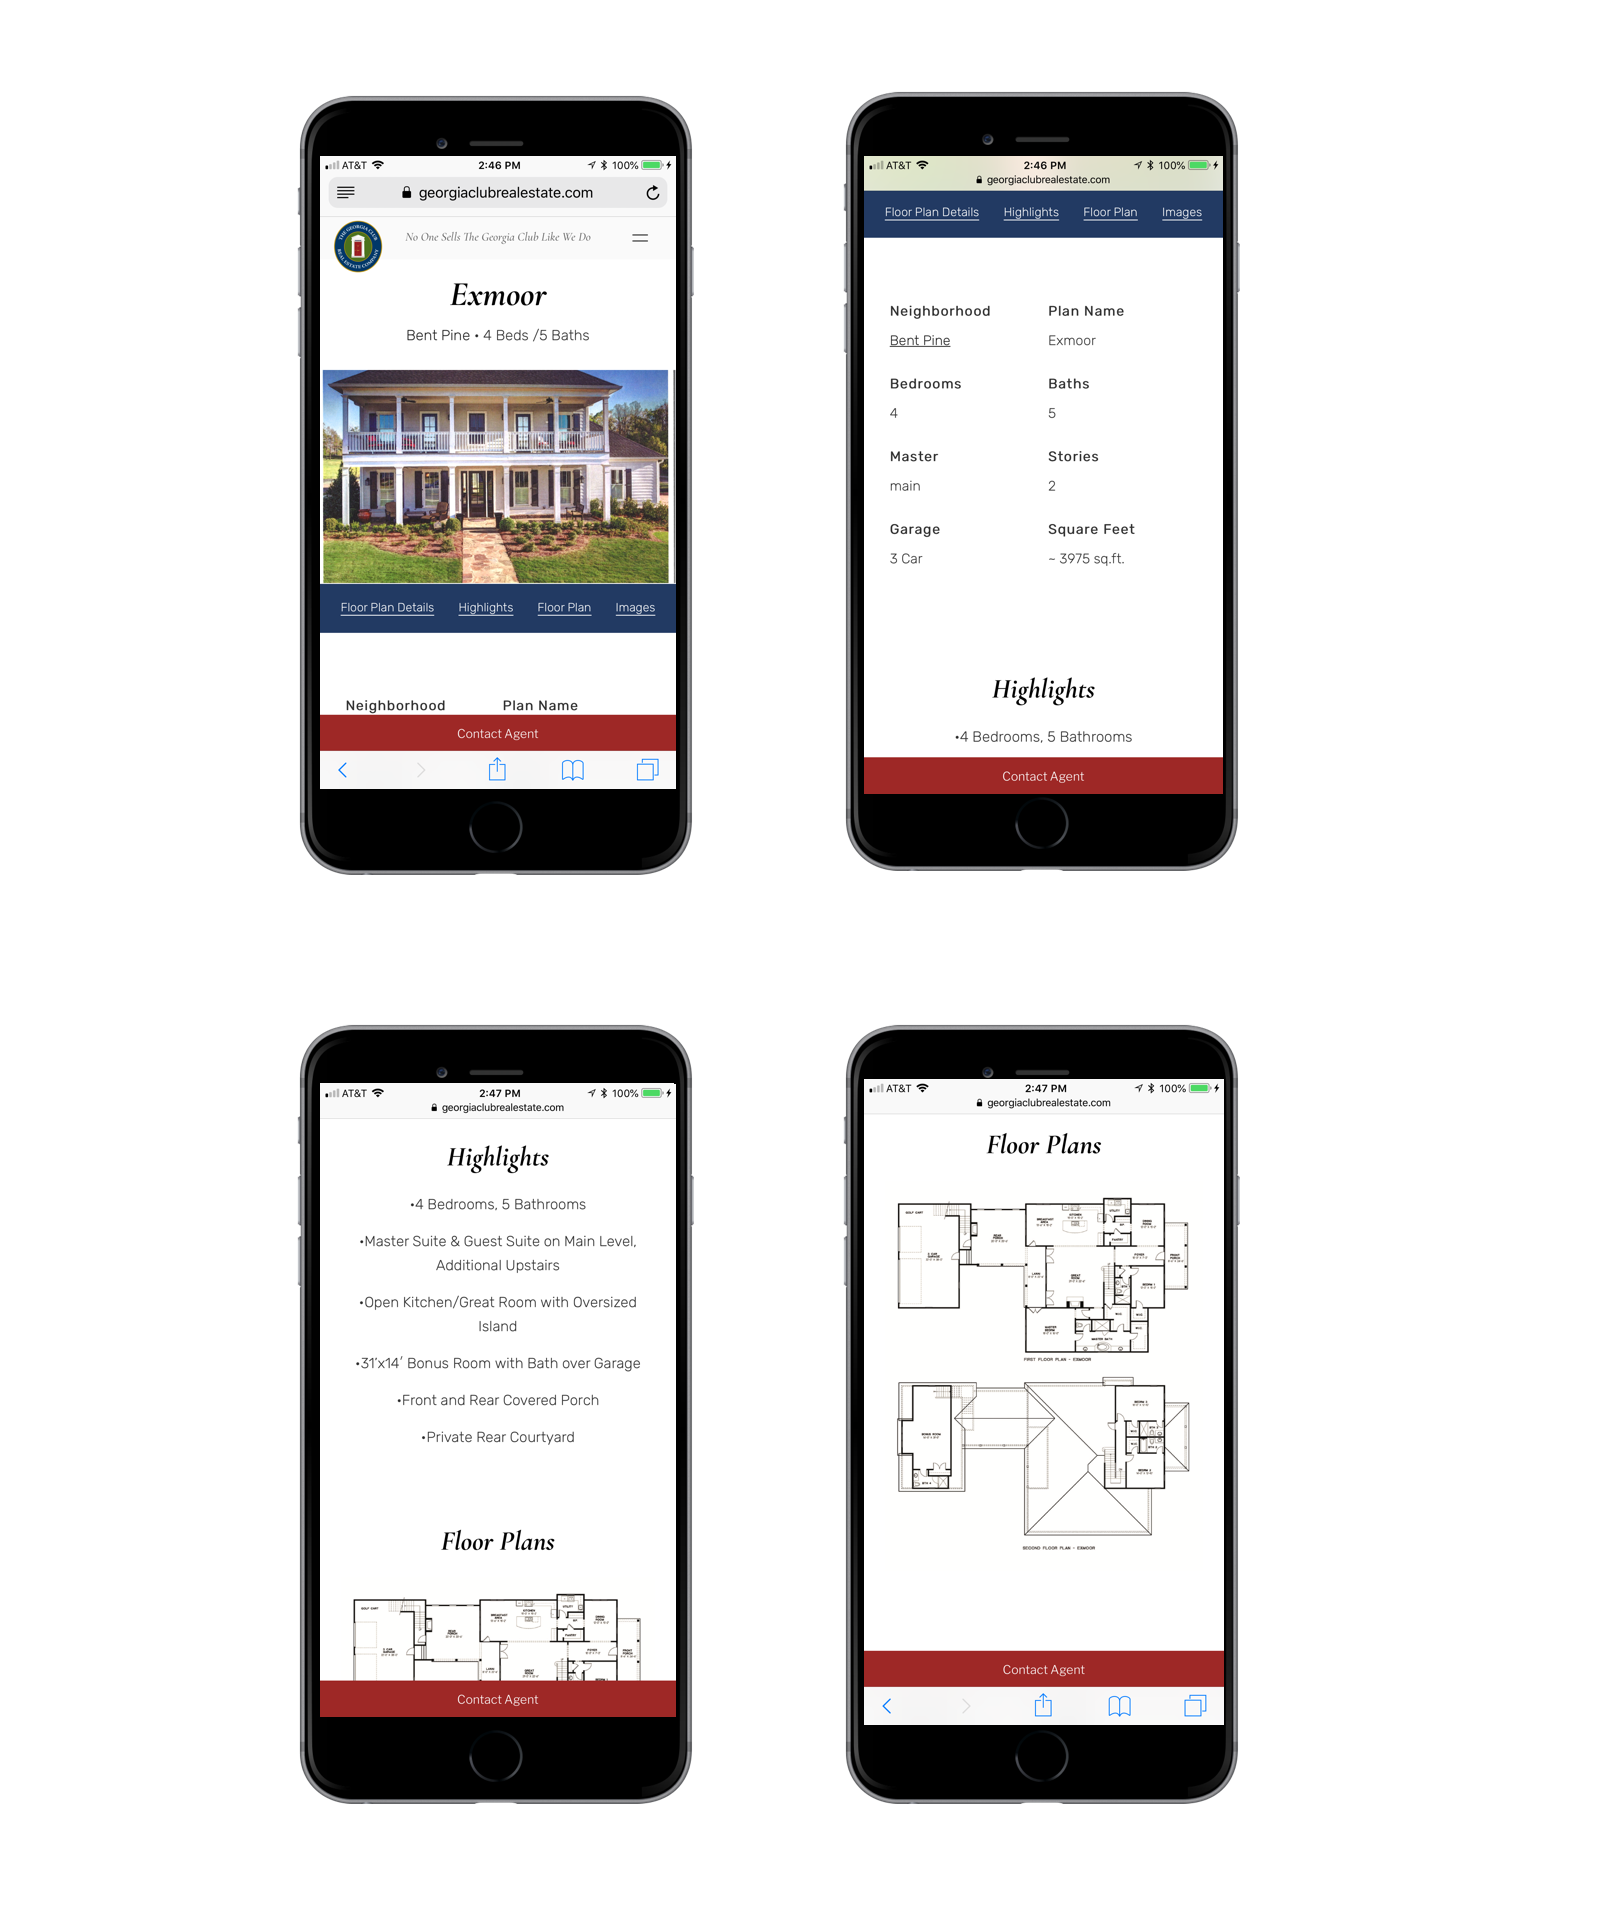 The Georgia Club Real Estate Company Floor Plans single page mobile view